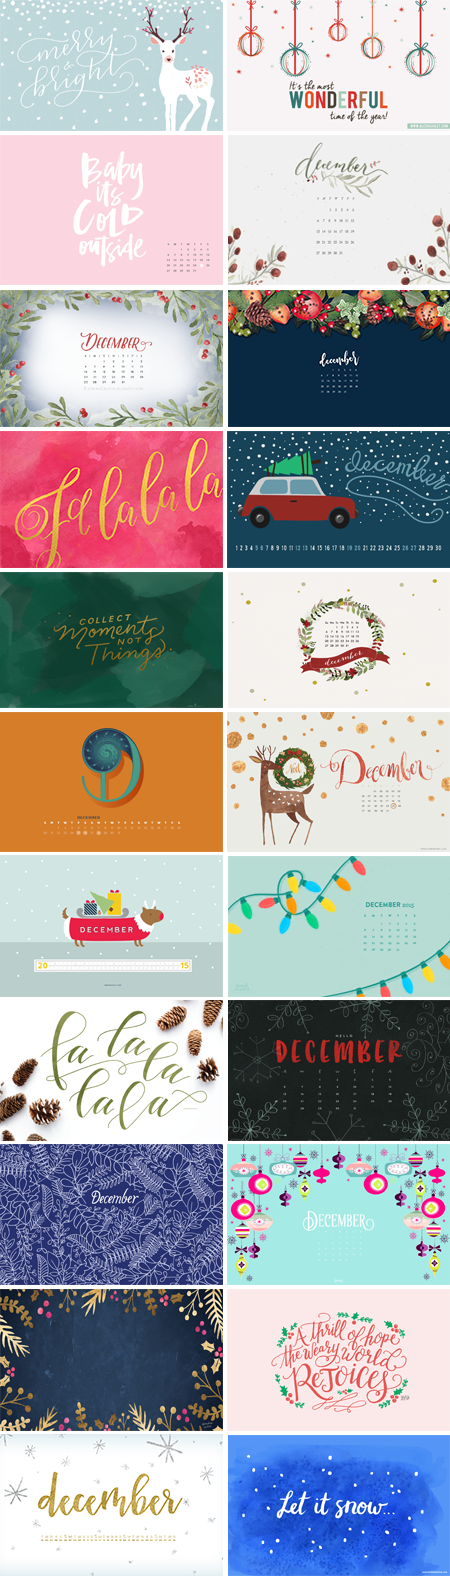 // December 2015 Wallpapers Round-up